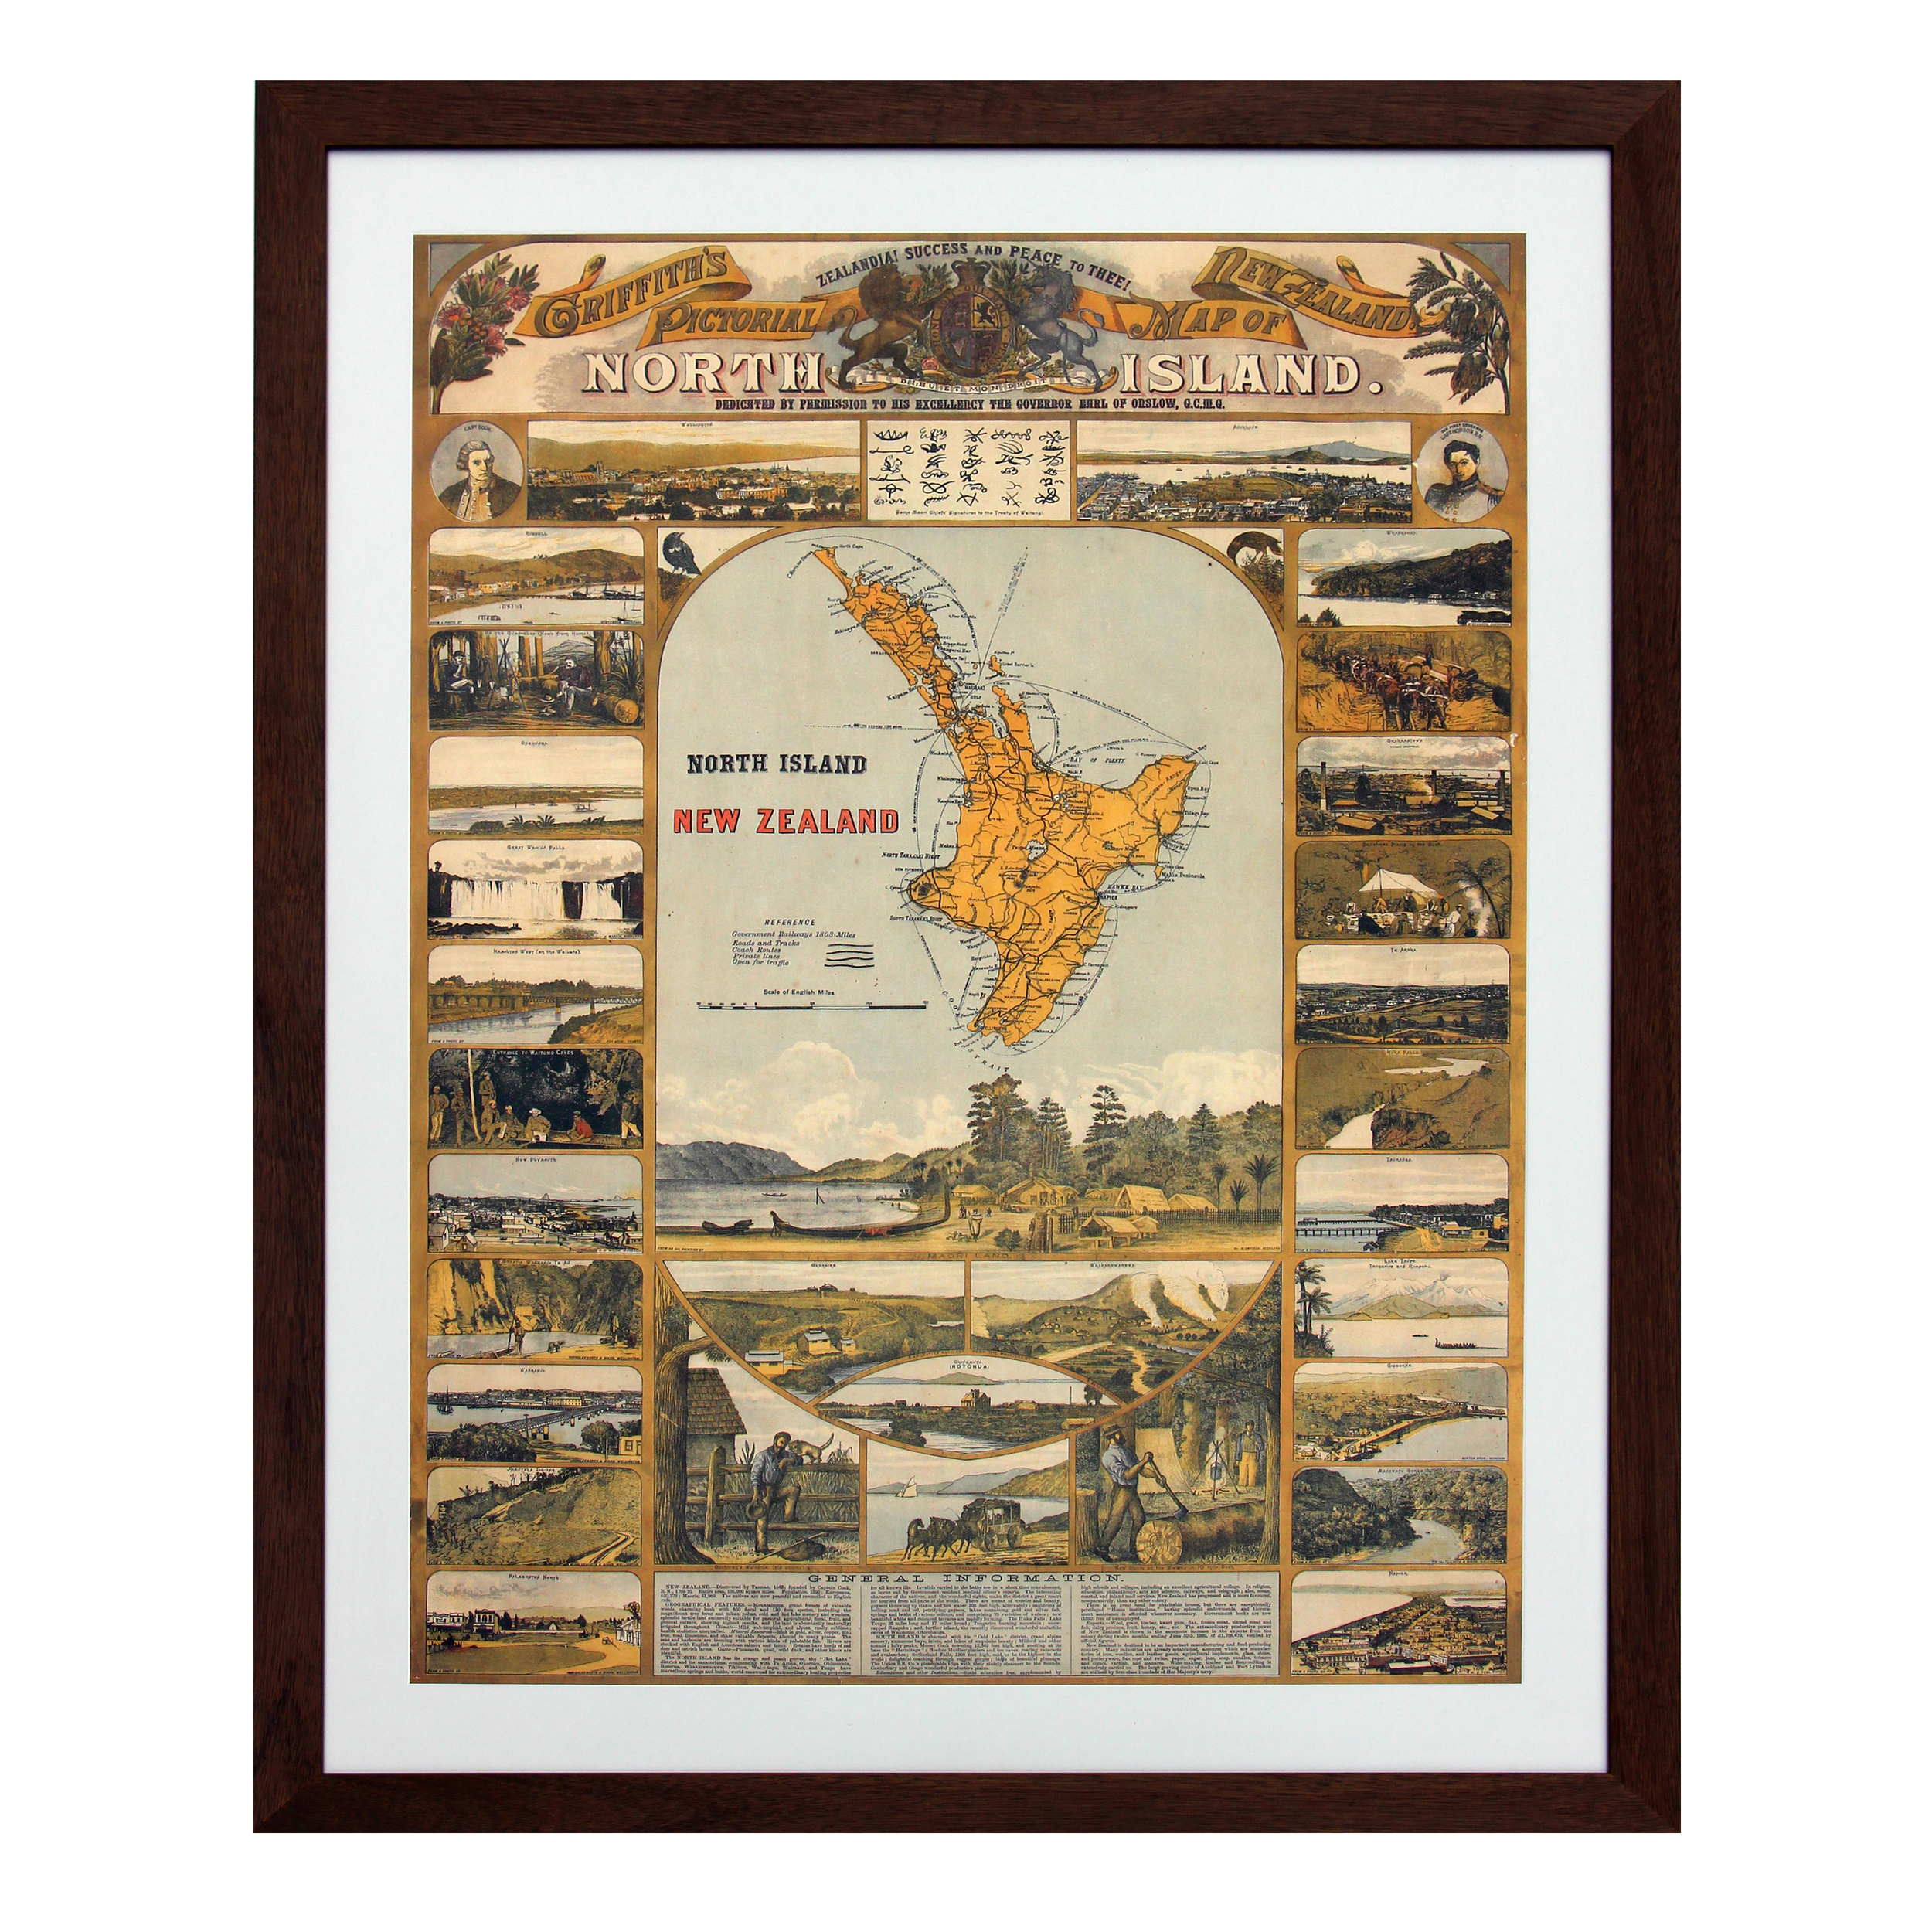 Original 'Griffith's Pictorial Map of New Zealand'